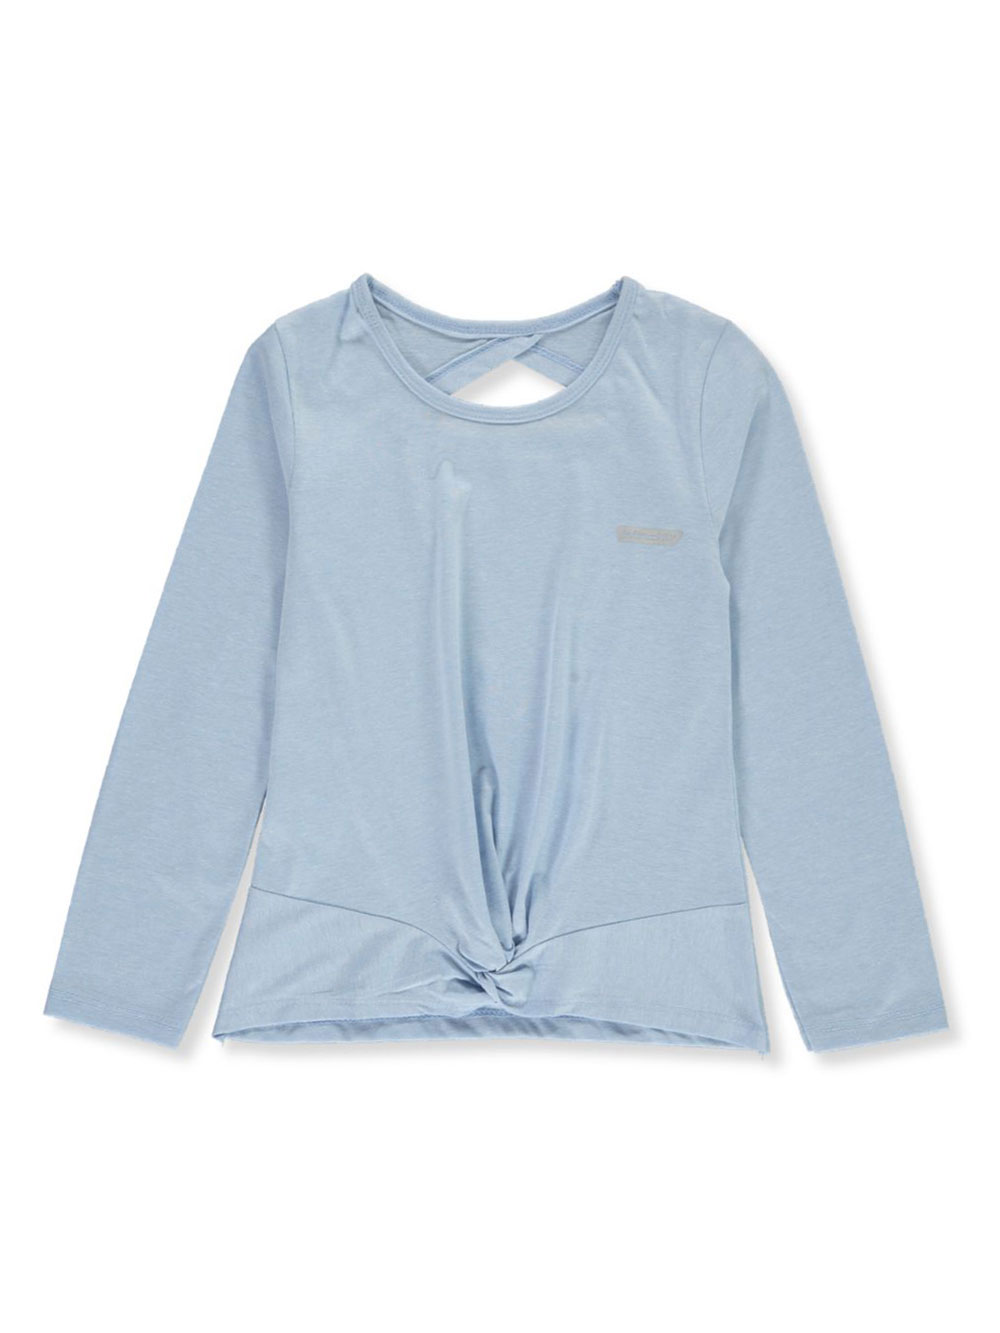 Blue Fashion Tops